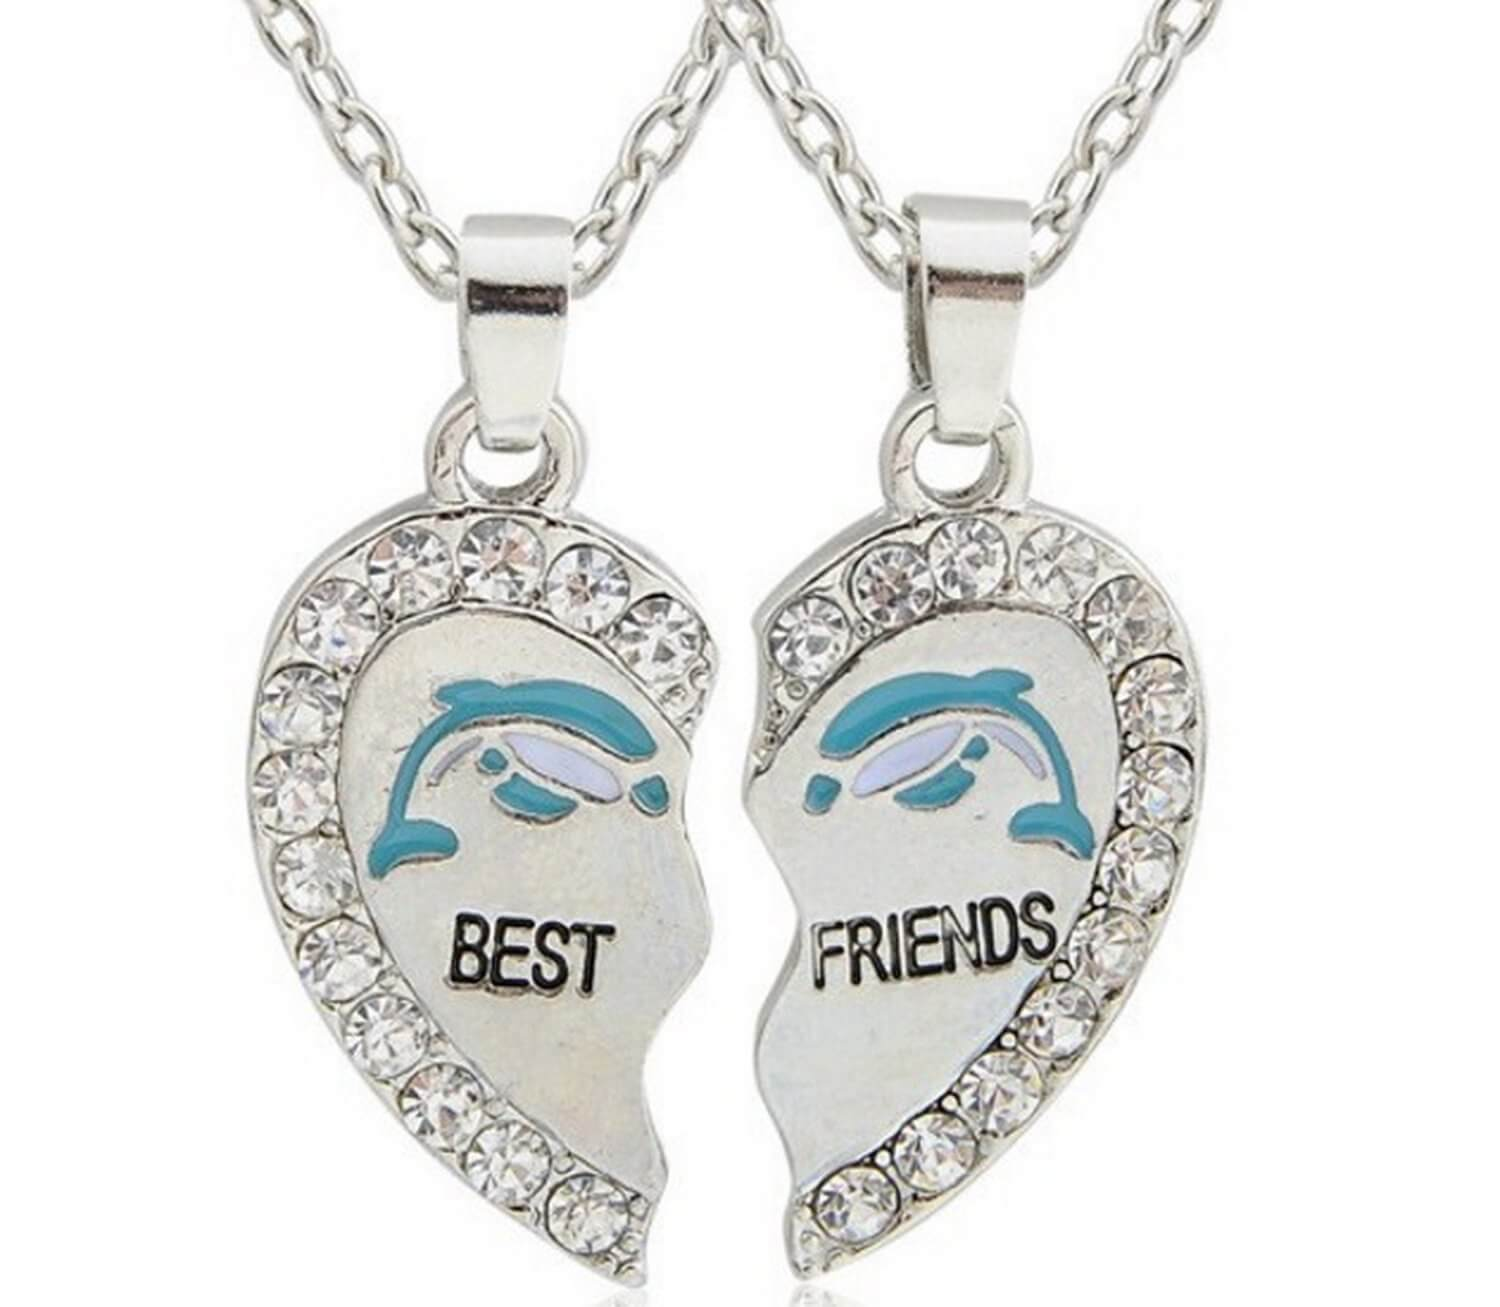 necklaces friend set eloi girls inch heart dp best for multicolor gifts friendship com necklace amazon jewelry teen piece lockets